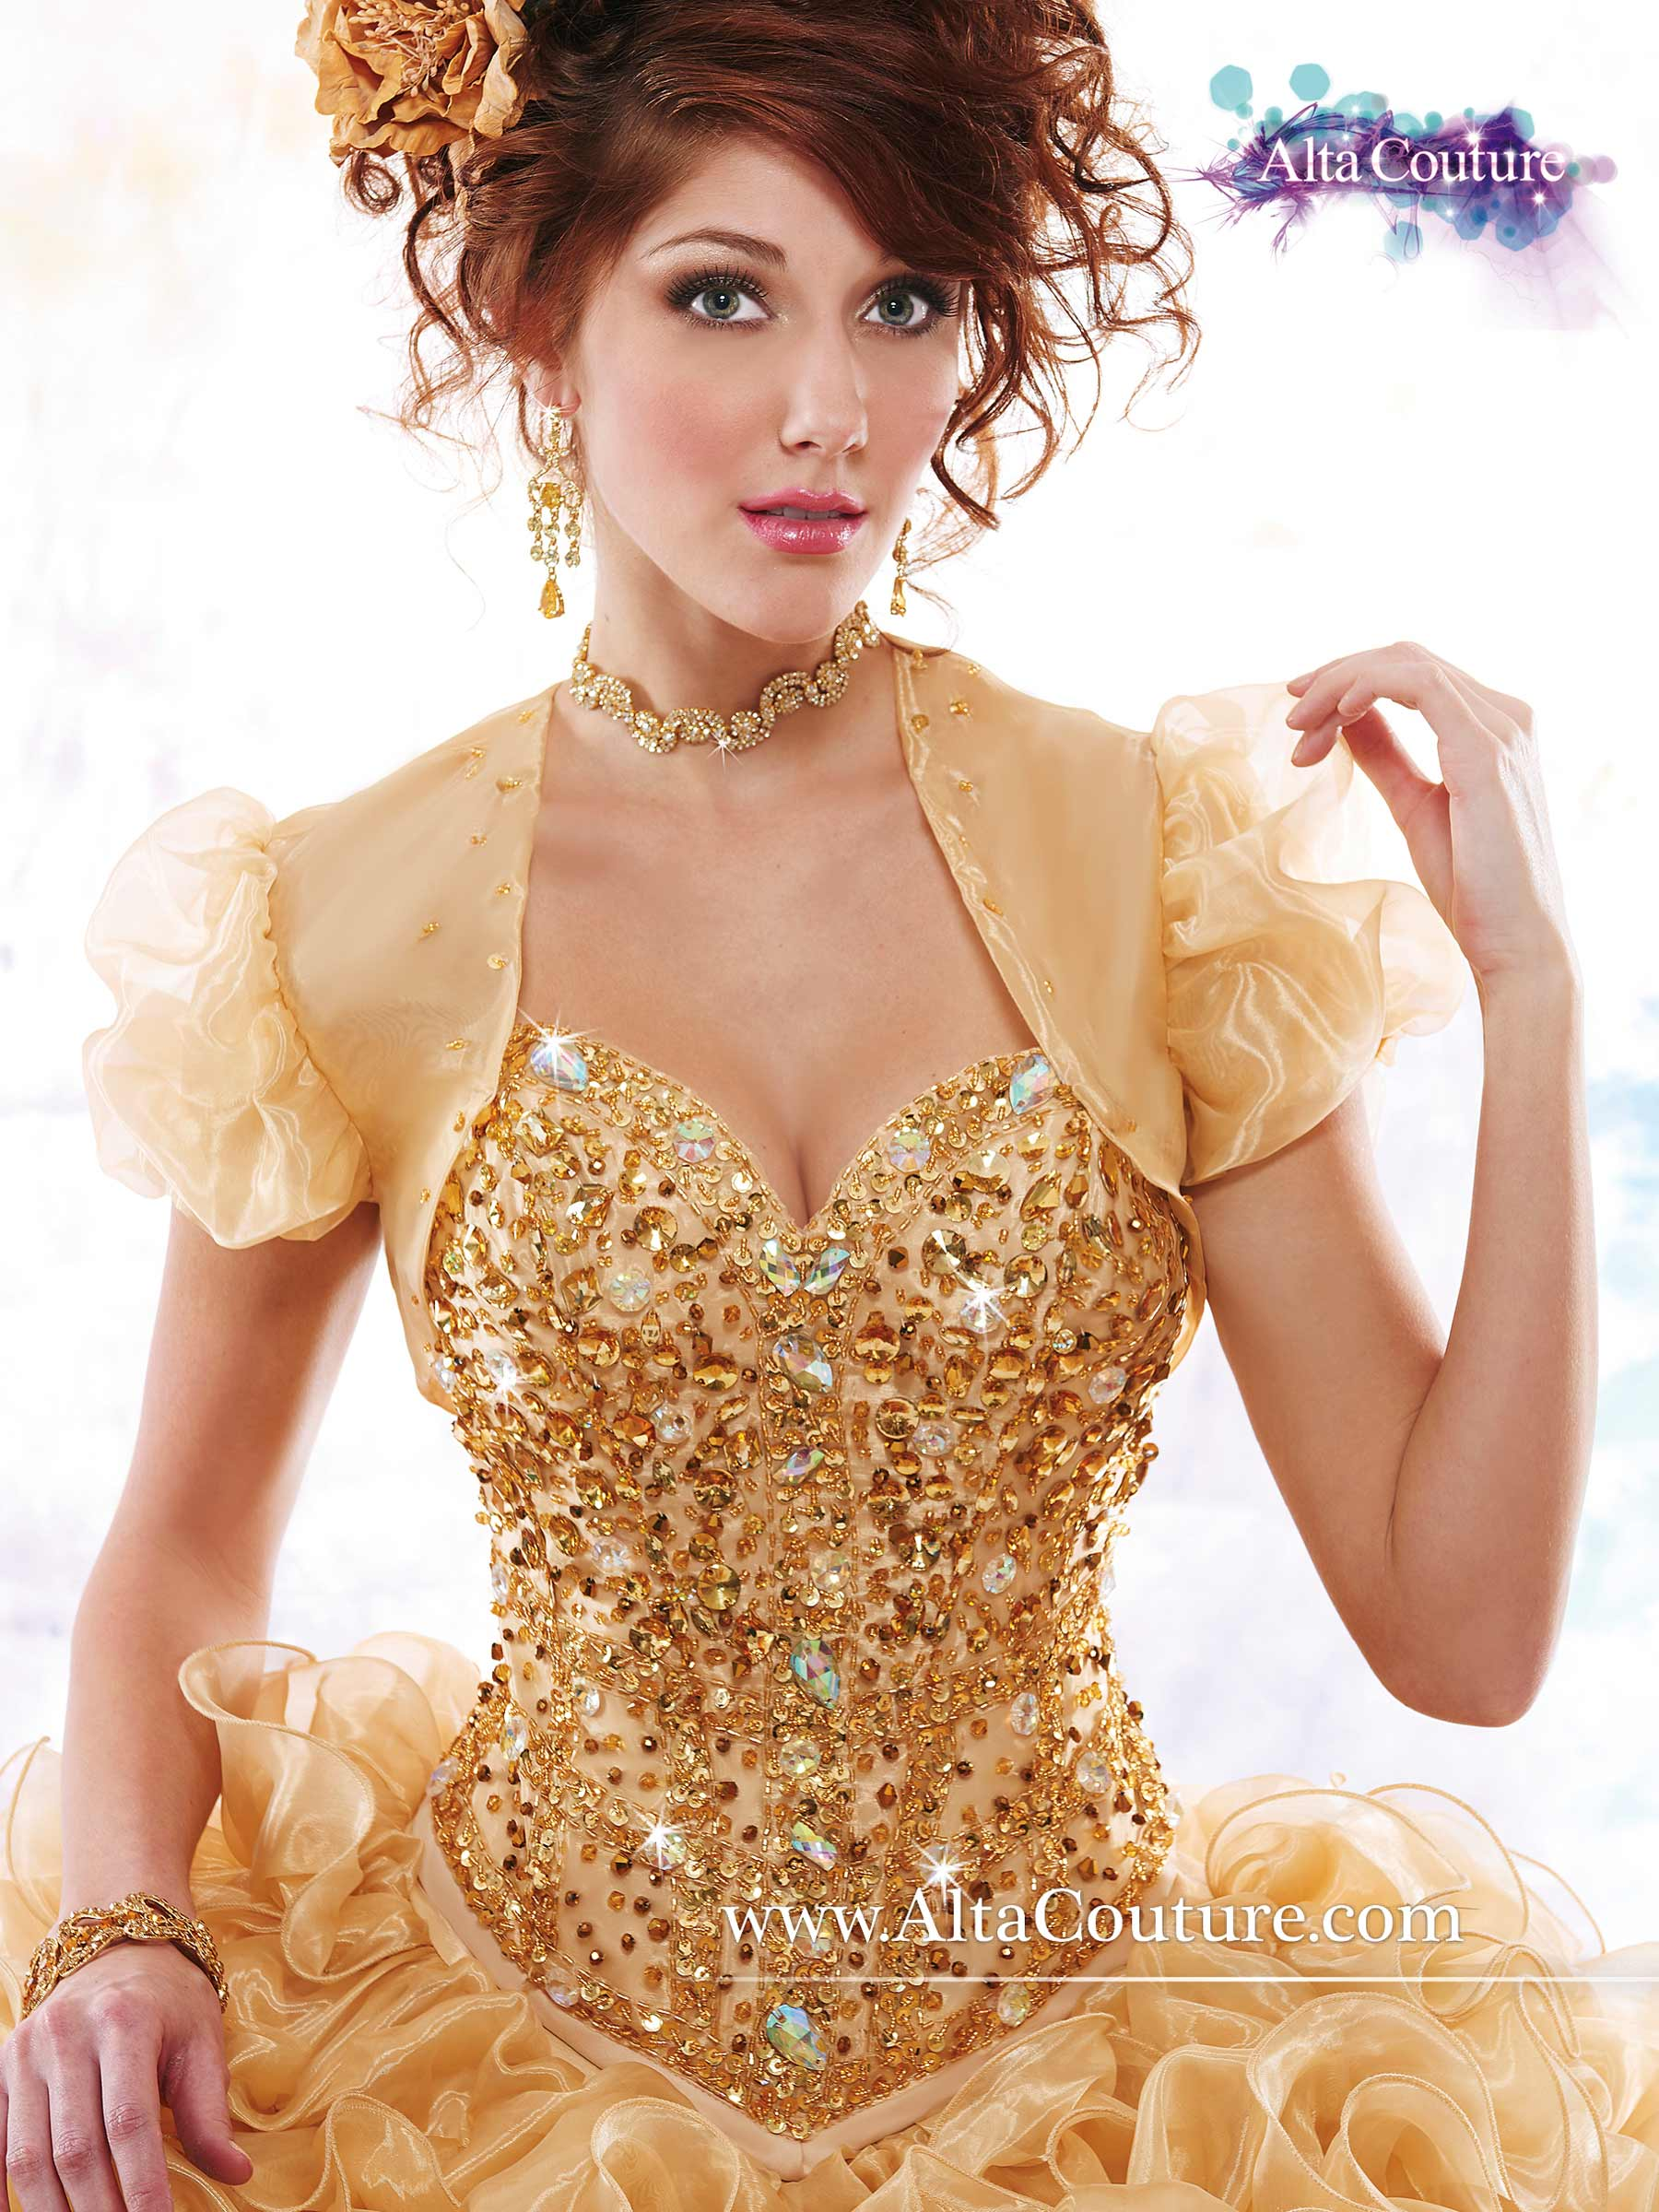 Style f15 4t139 scelebrations for Alta couture